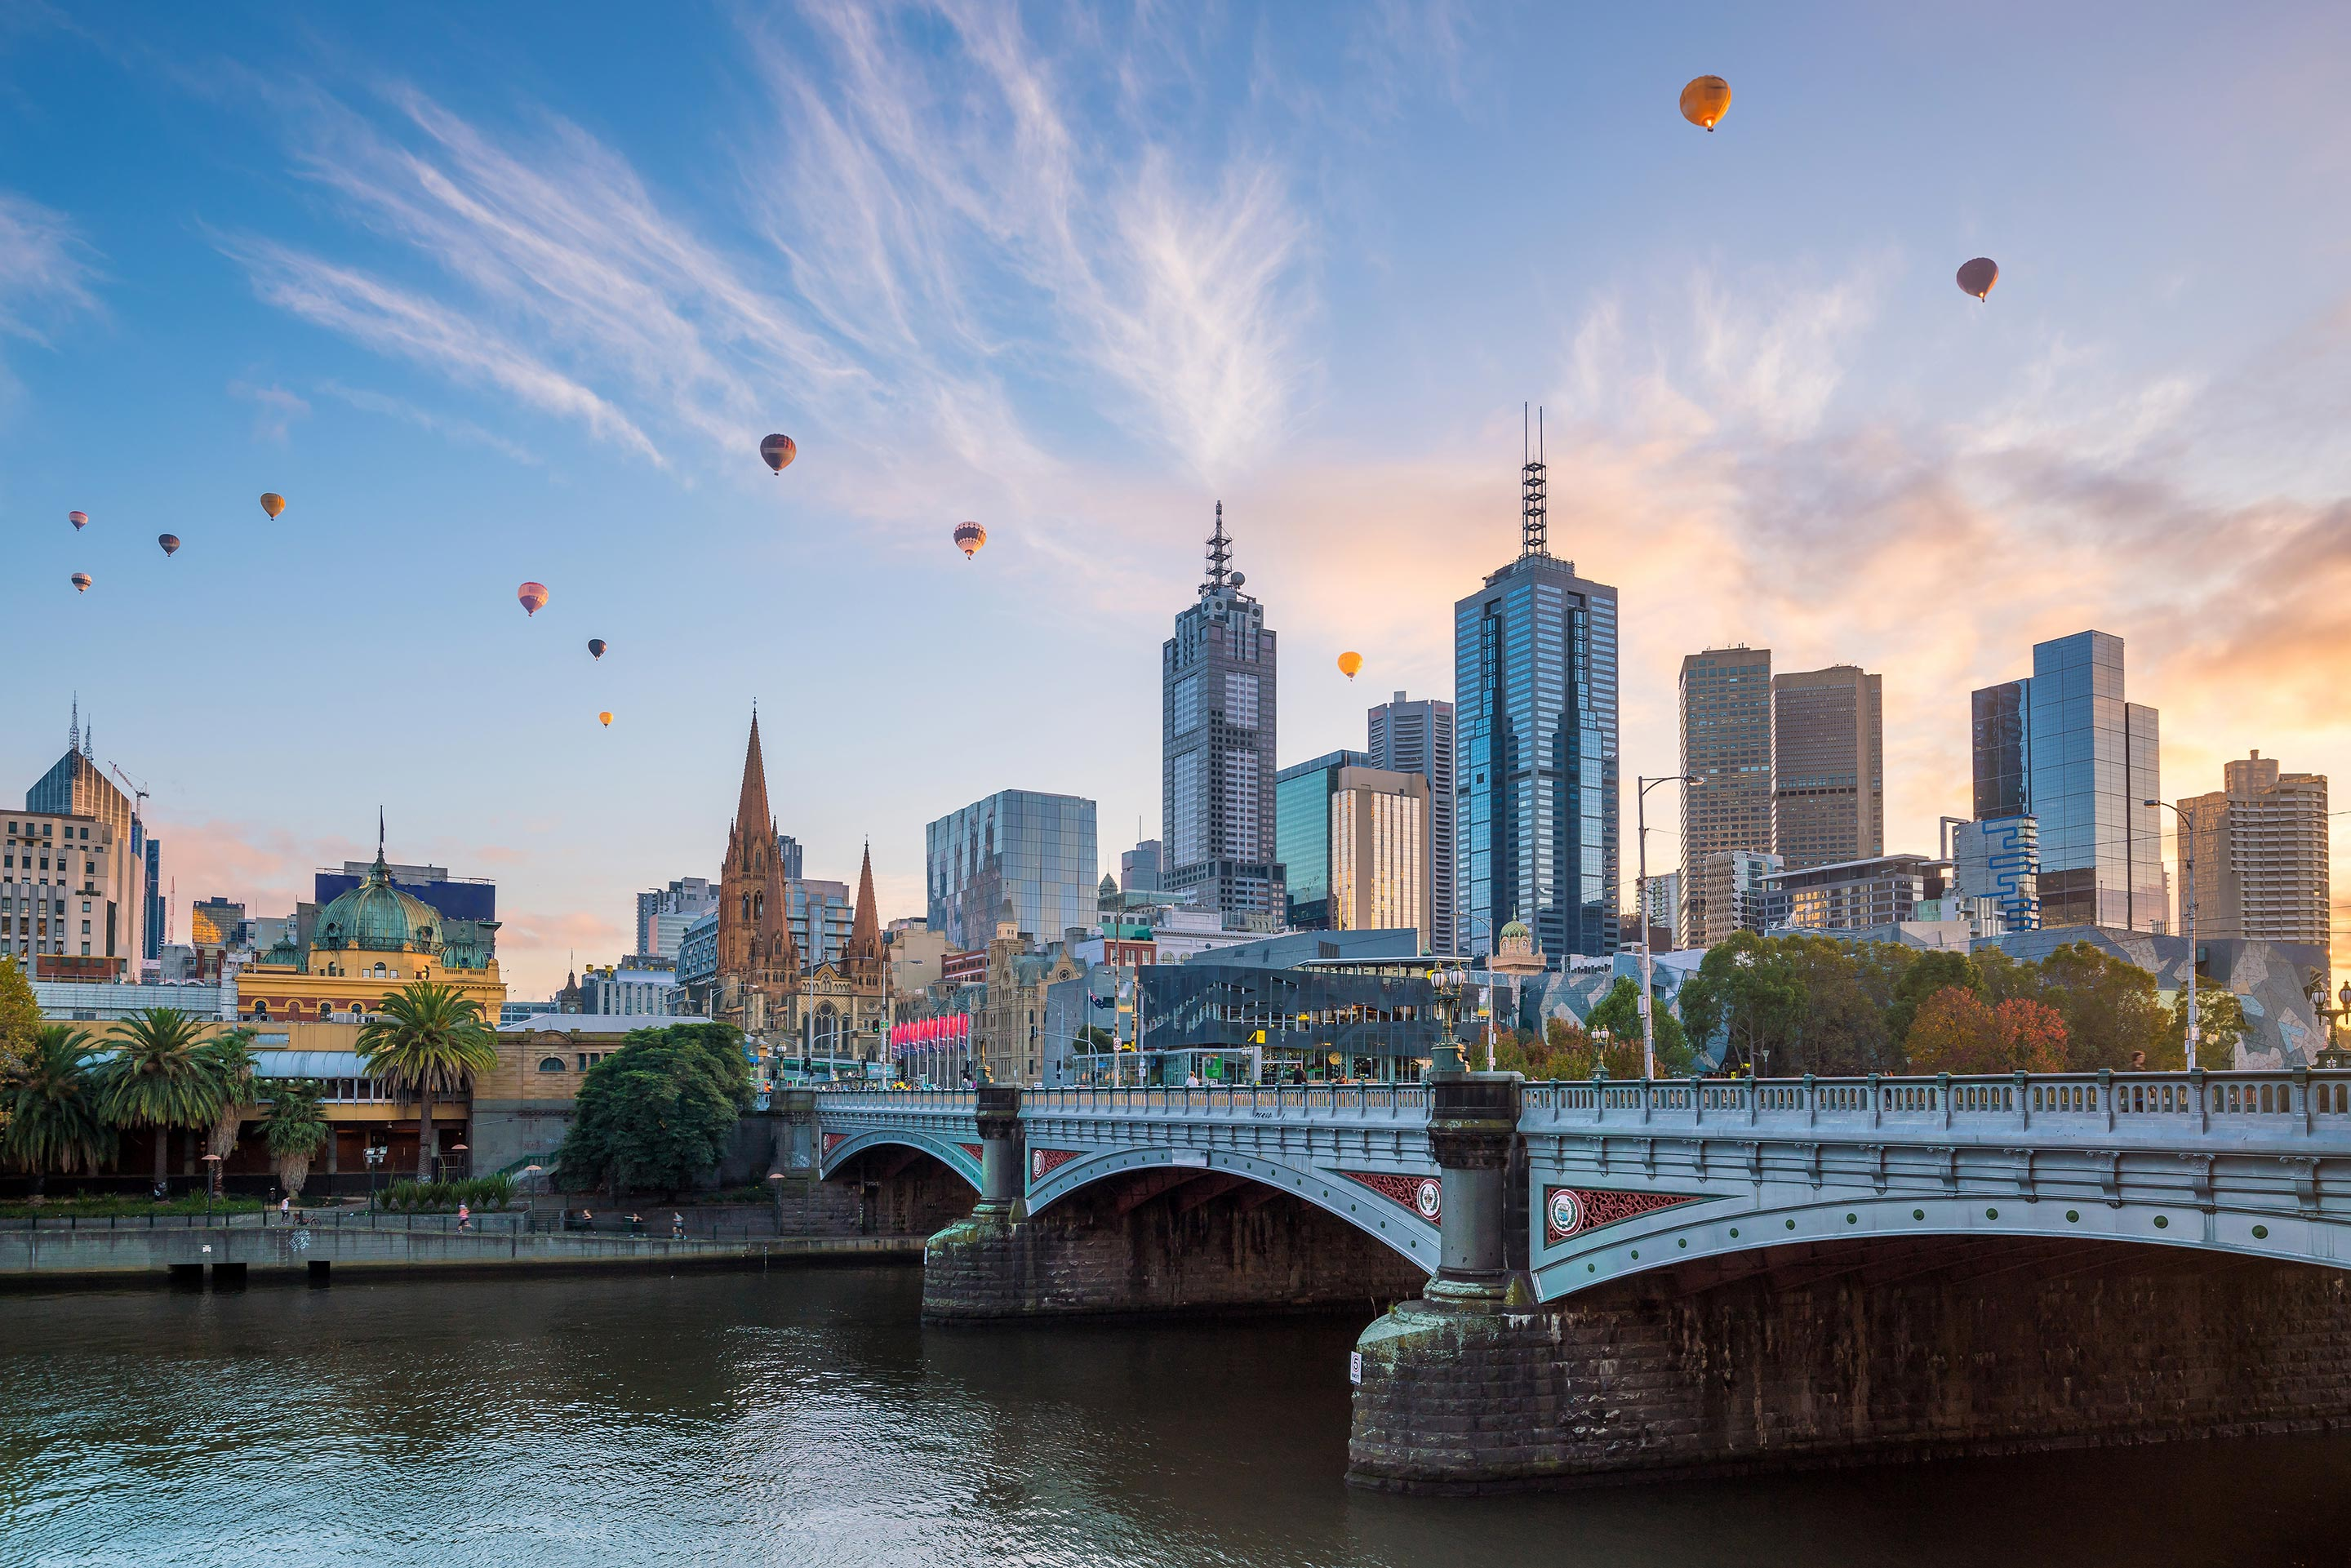 City Skyline filled with Hot Air Balloons in Melbourne, Australia